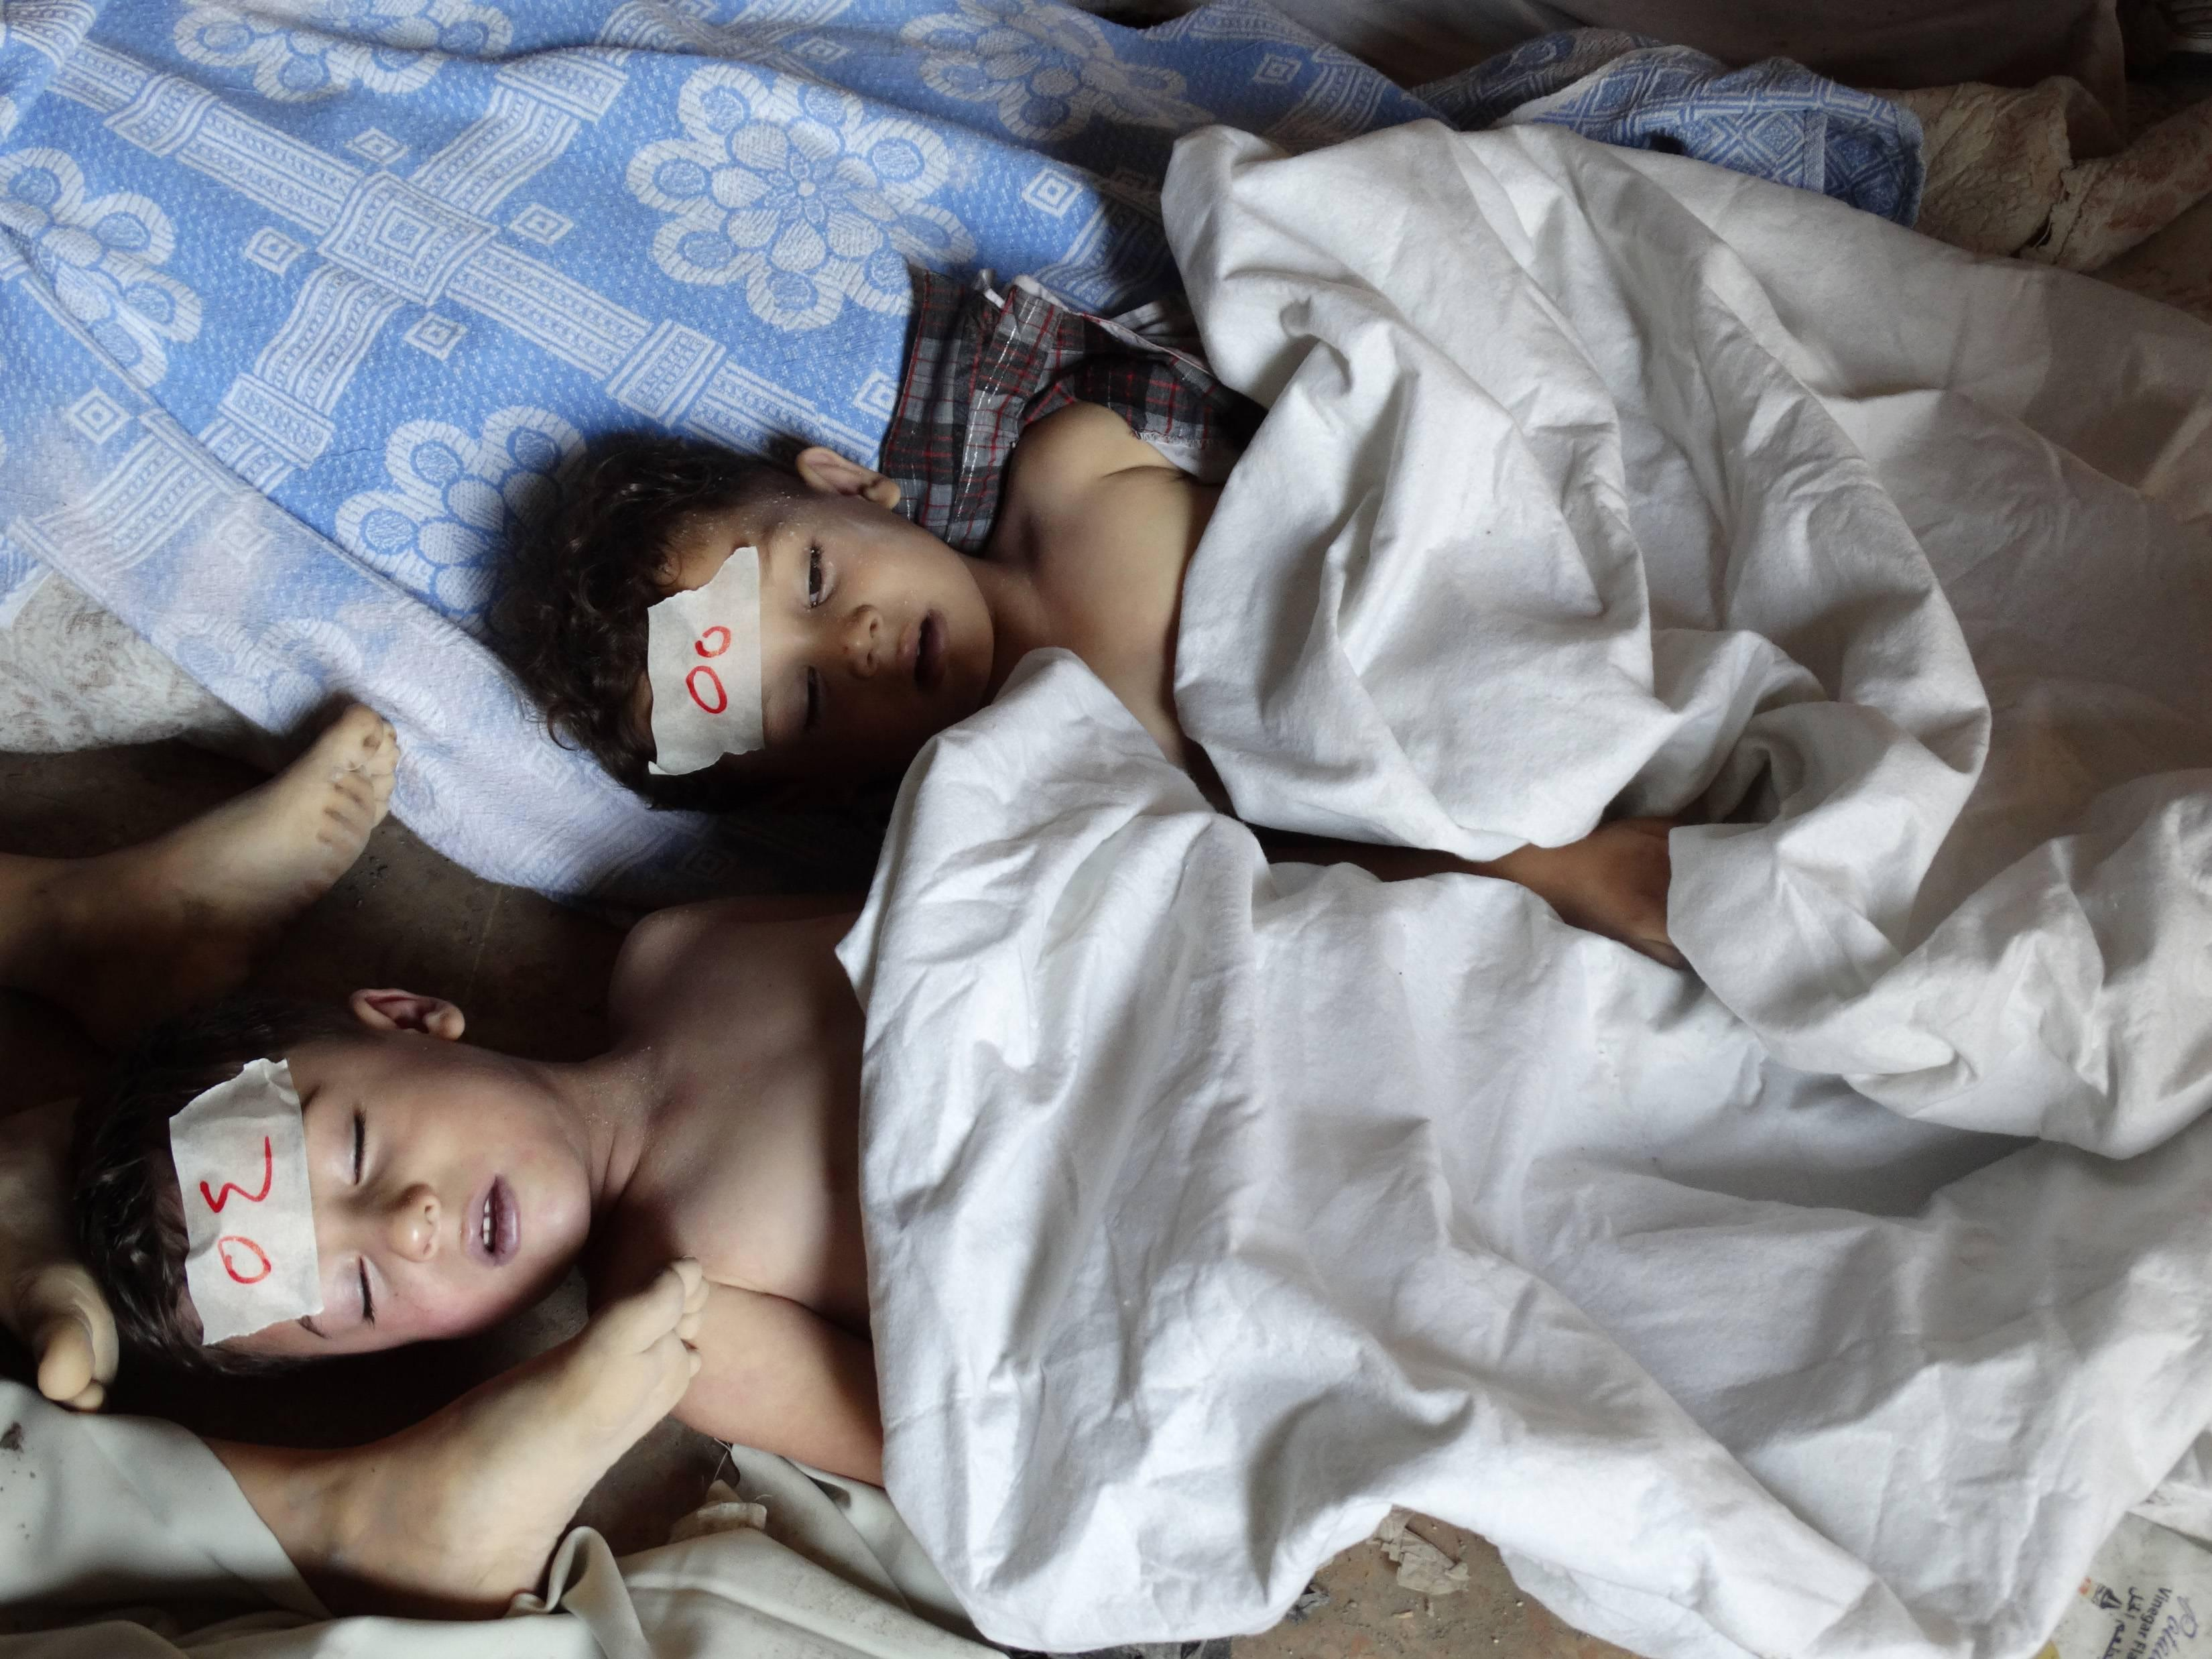 Syria casualties children gas attack